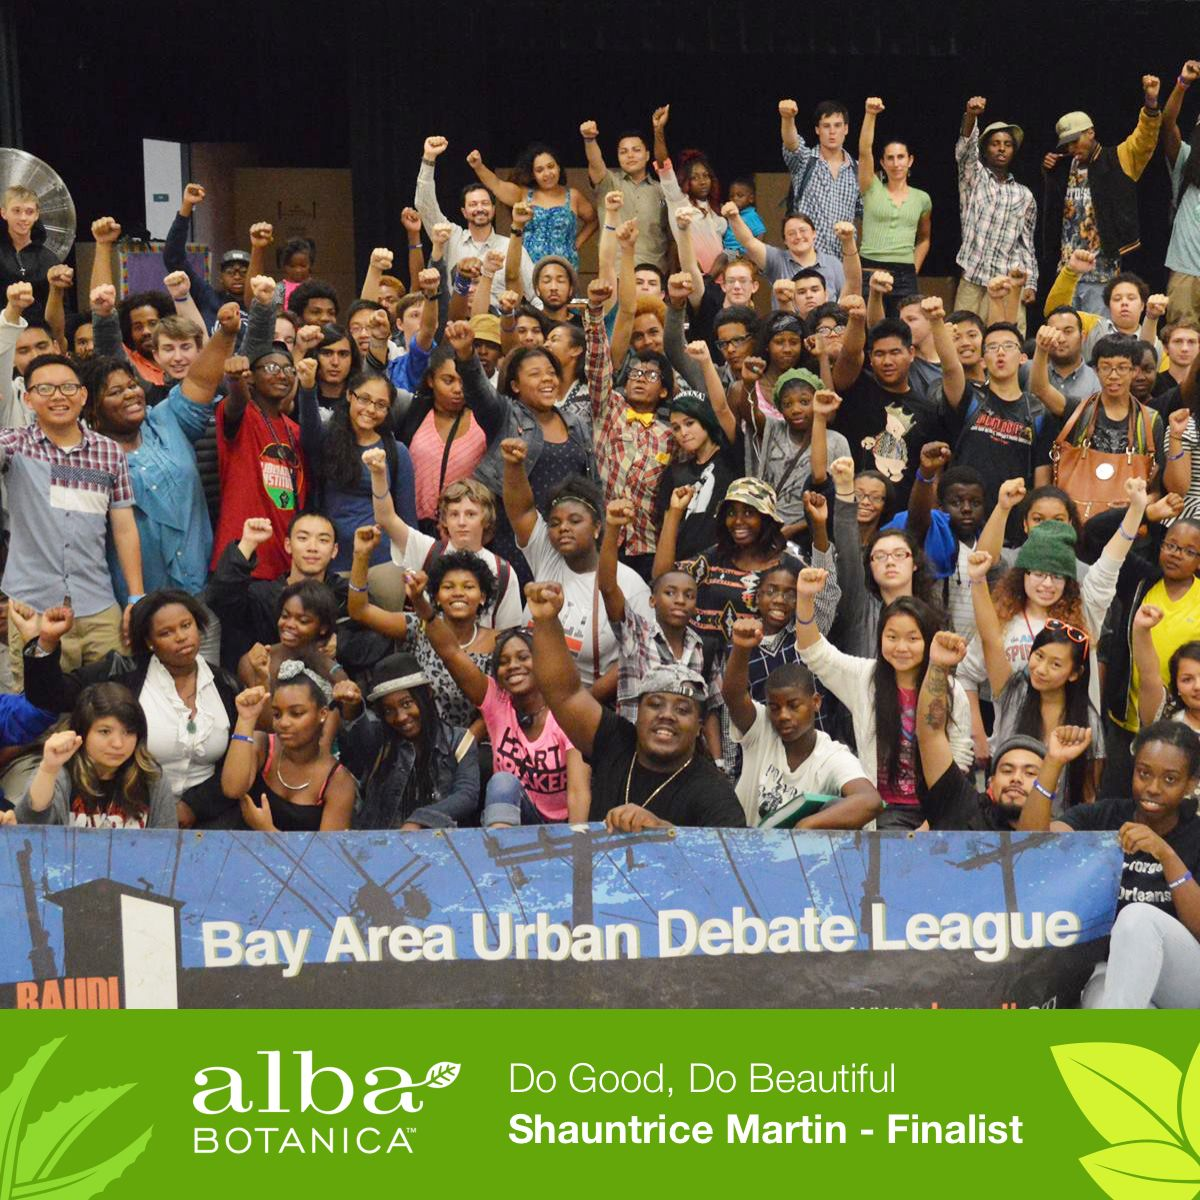 Alba Botanica Do Good Do Beautiful Grant Program Finalist Meet